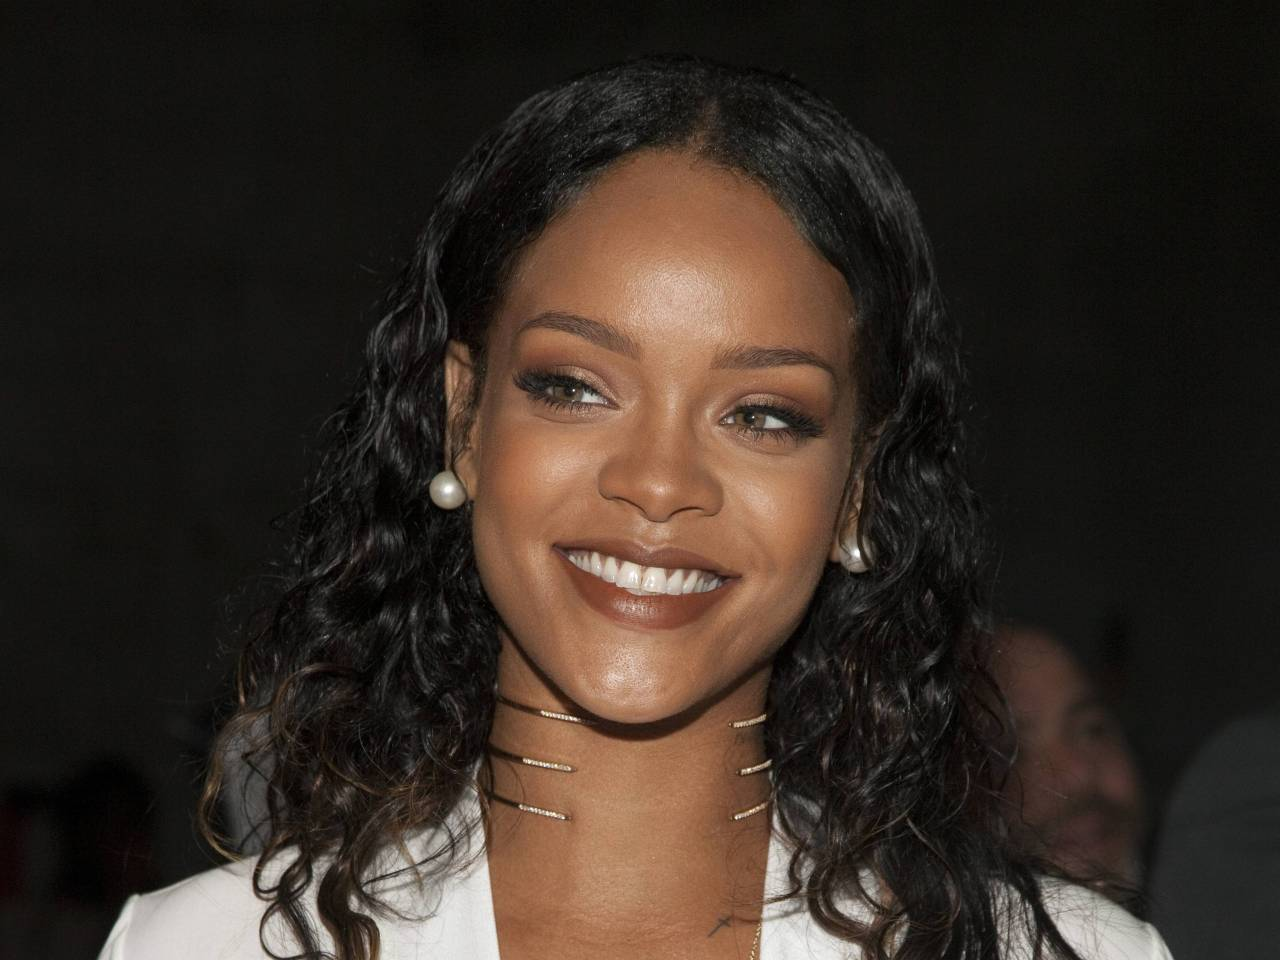 Rihanna, Hassan Jameel Have Been 'Hooking Up for a Few Months'